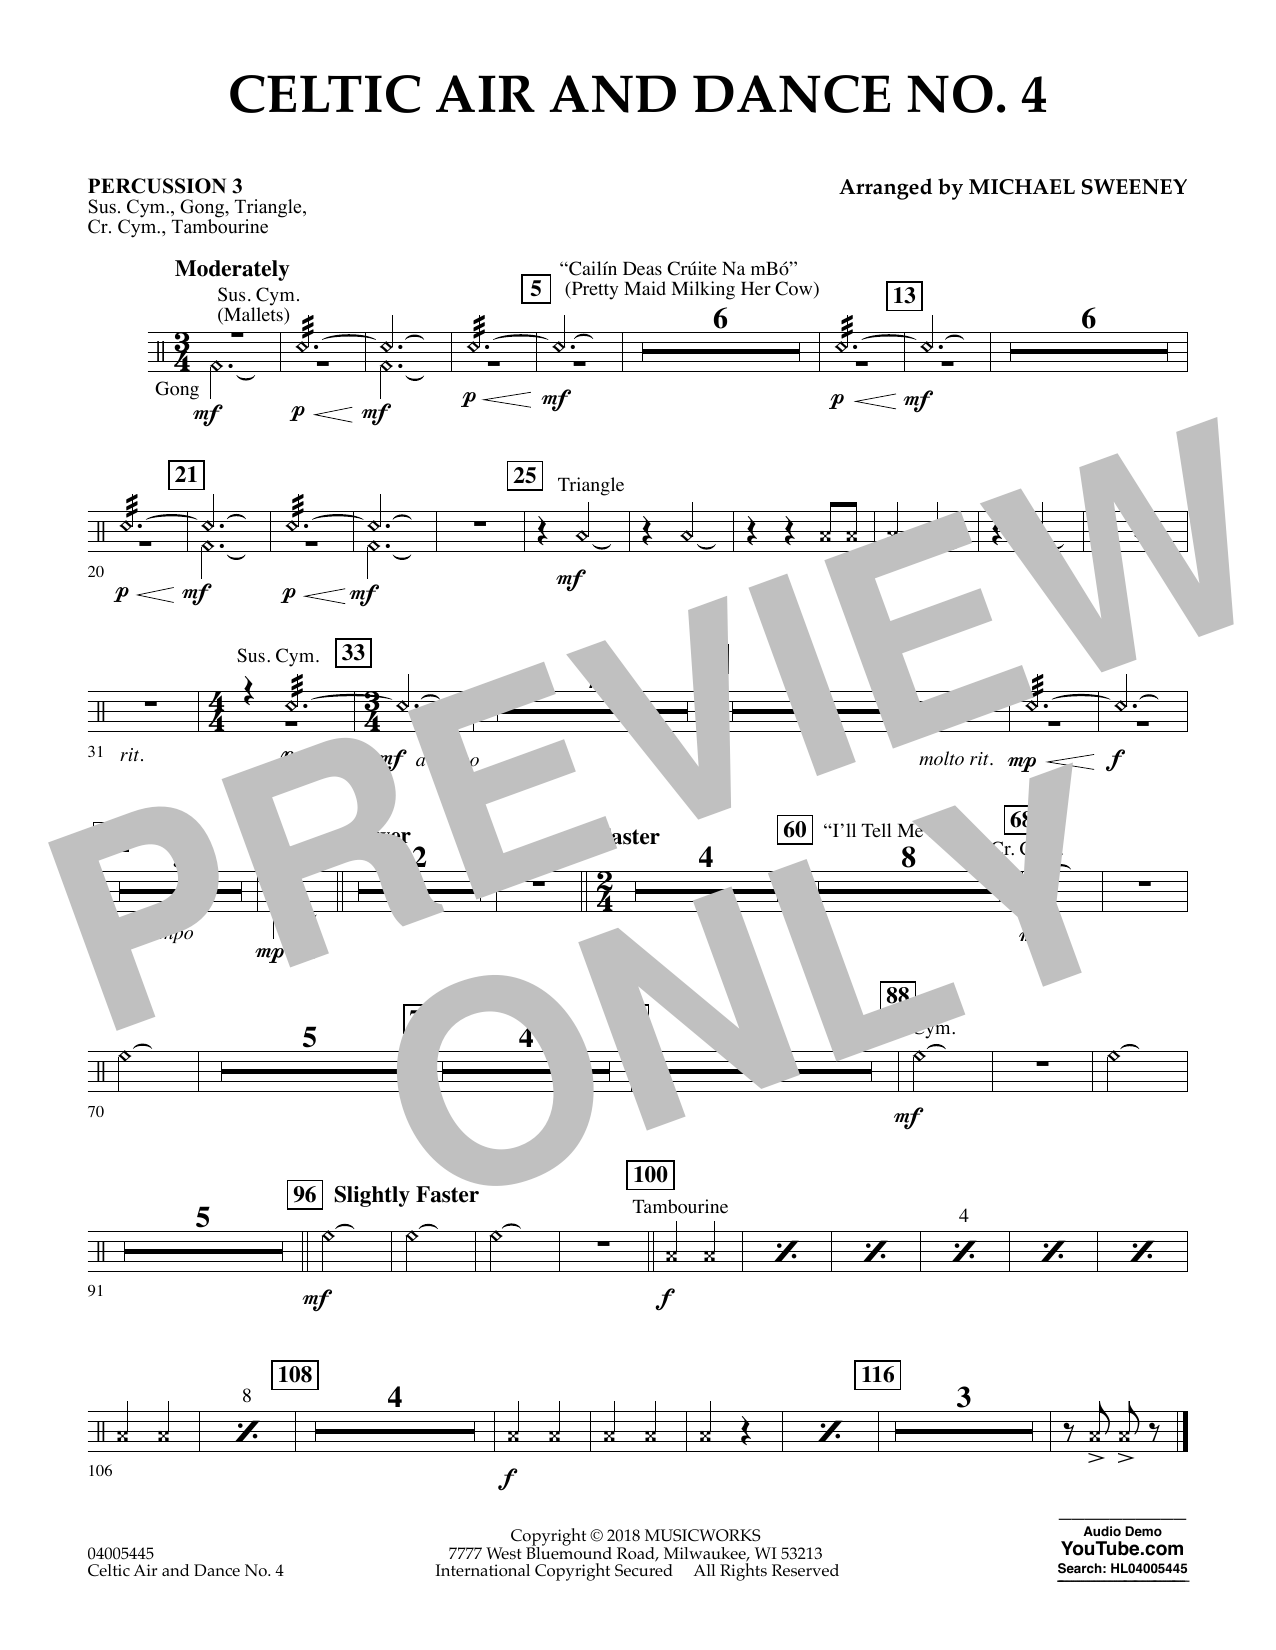 Celtic Air and Dance No. 4 - Percussion 3 (Concert Band)